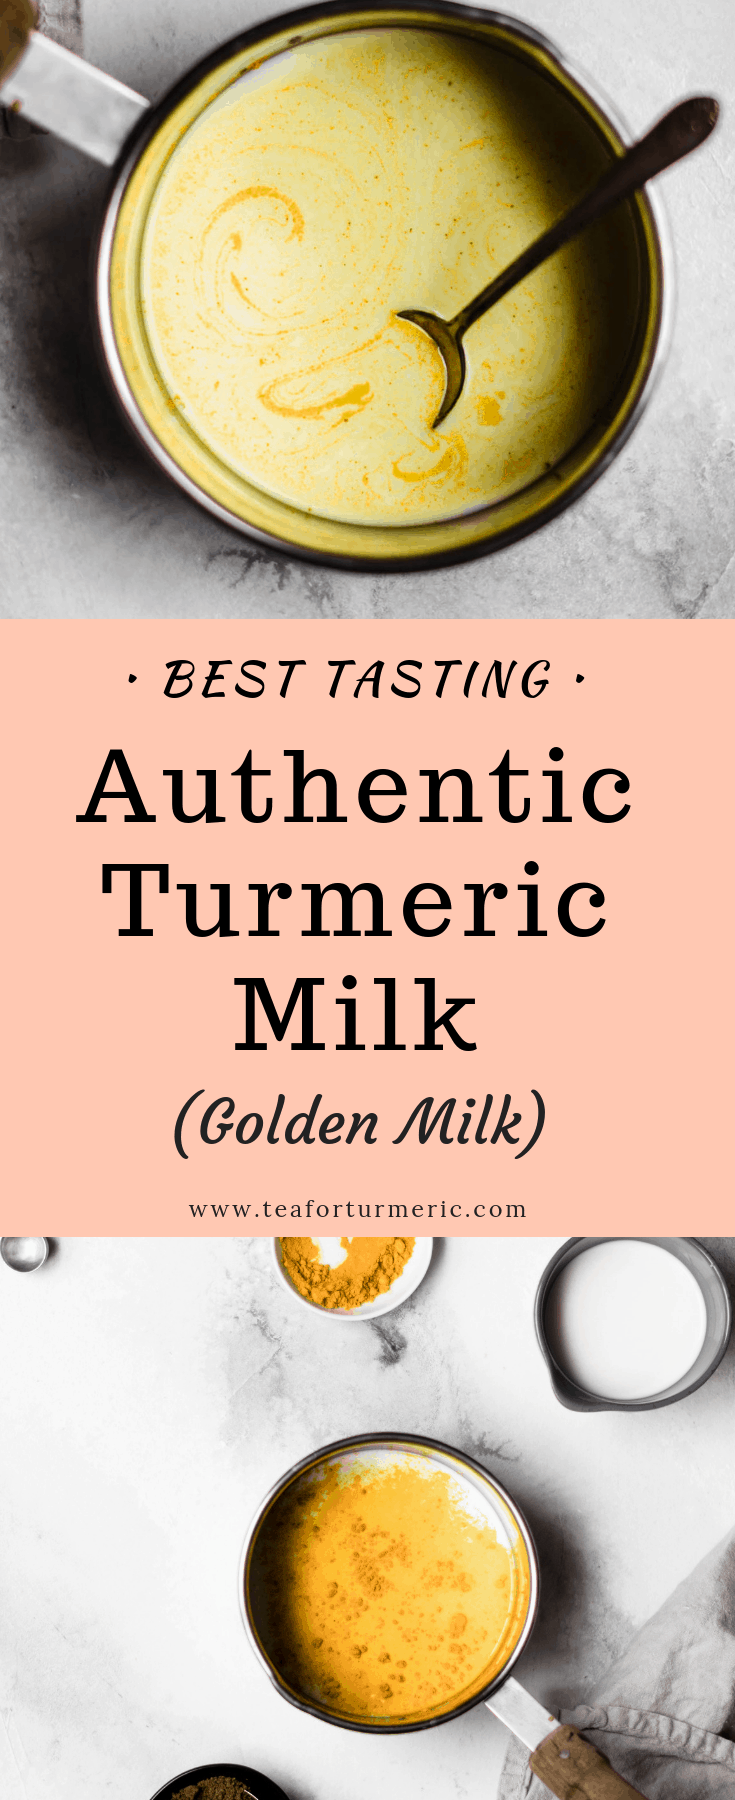 Turmeric Milk (haldi ka doodh) is an ancient Ayurvedic drink that\'s known for its anti-inflammatory properties. This quick and easy recipe is optimized for absorption, includes several warming spices and tastes perfectly sweet, rich, yet light and comforting.